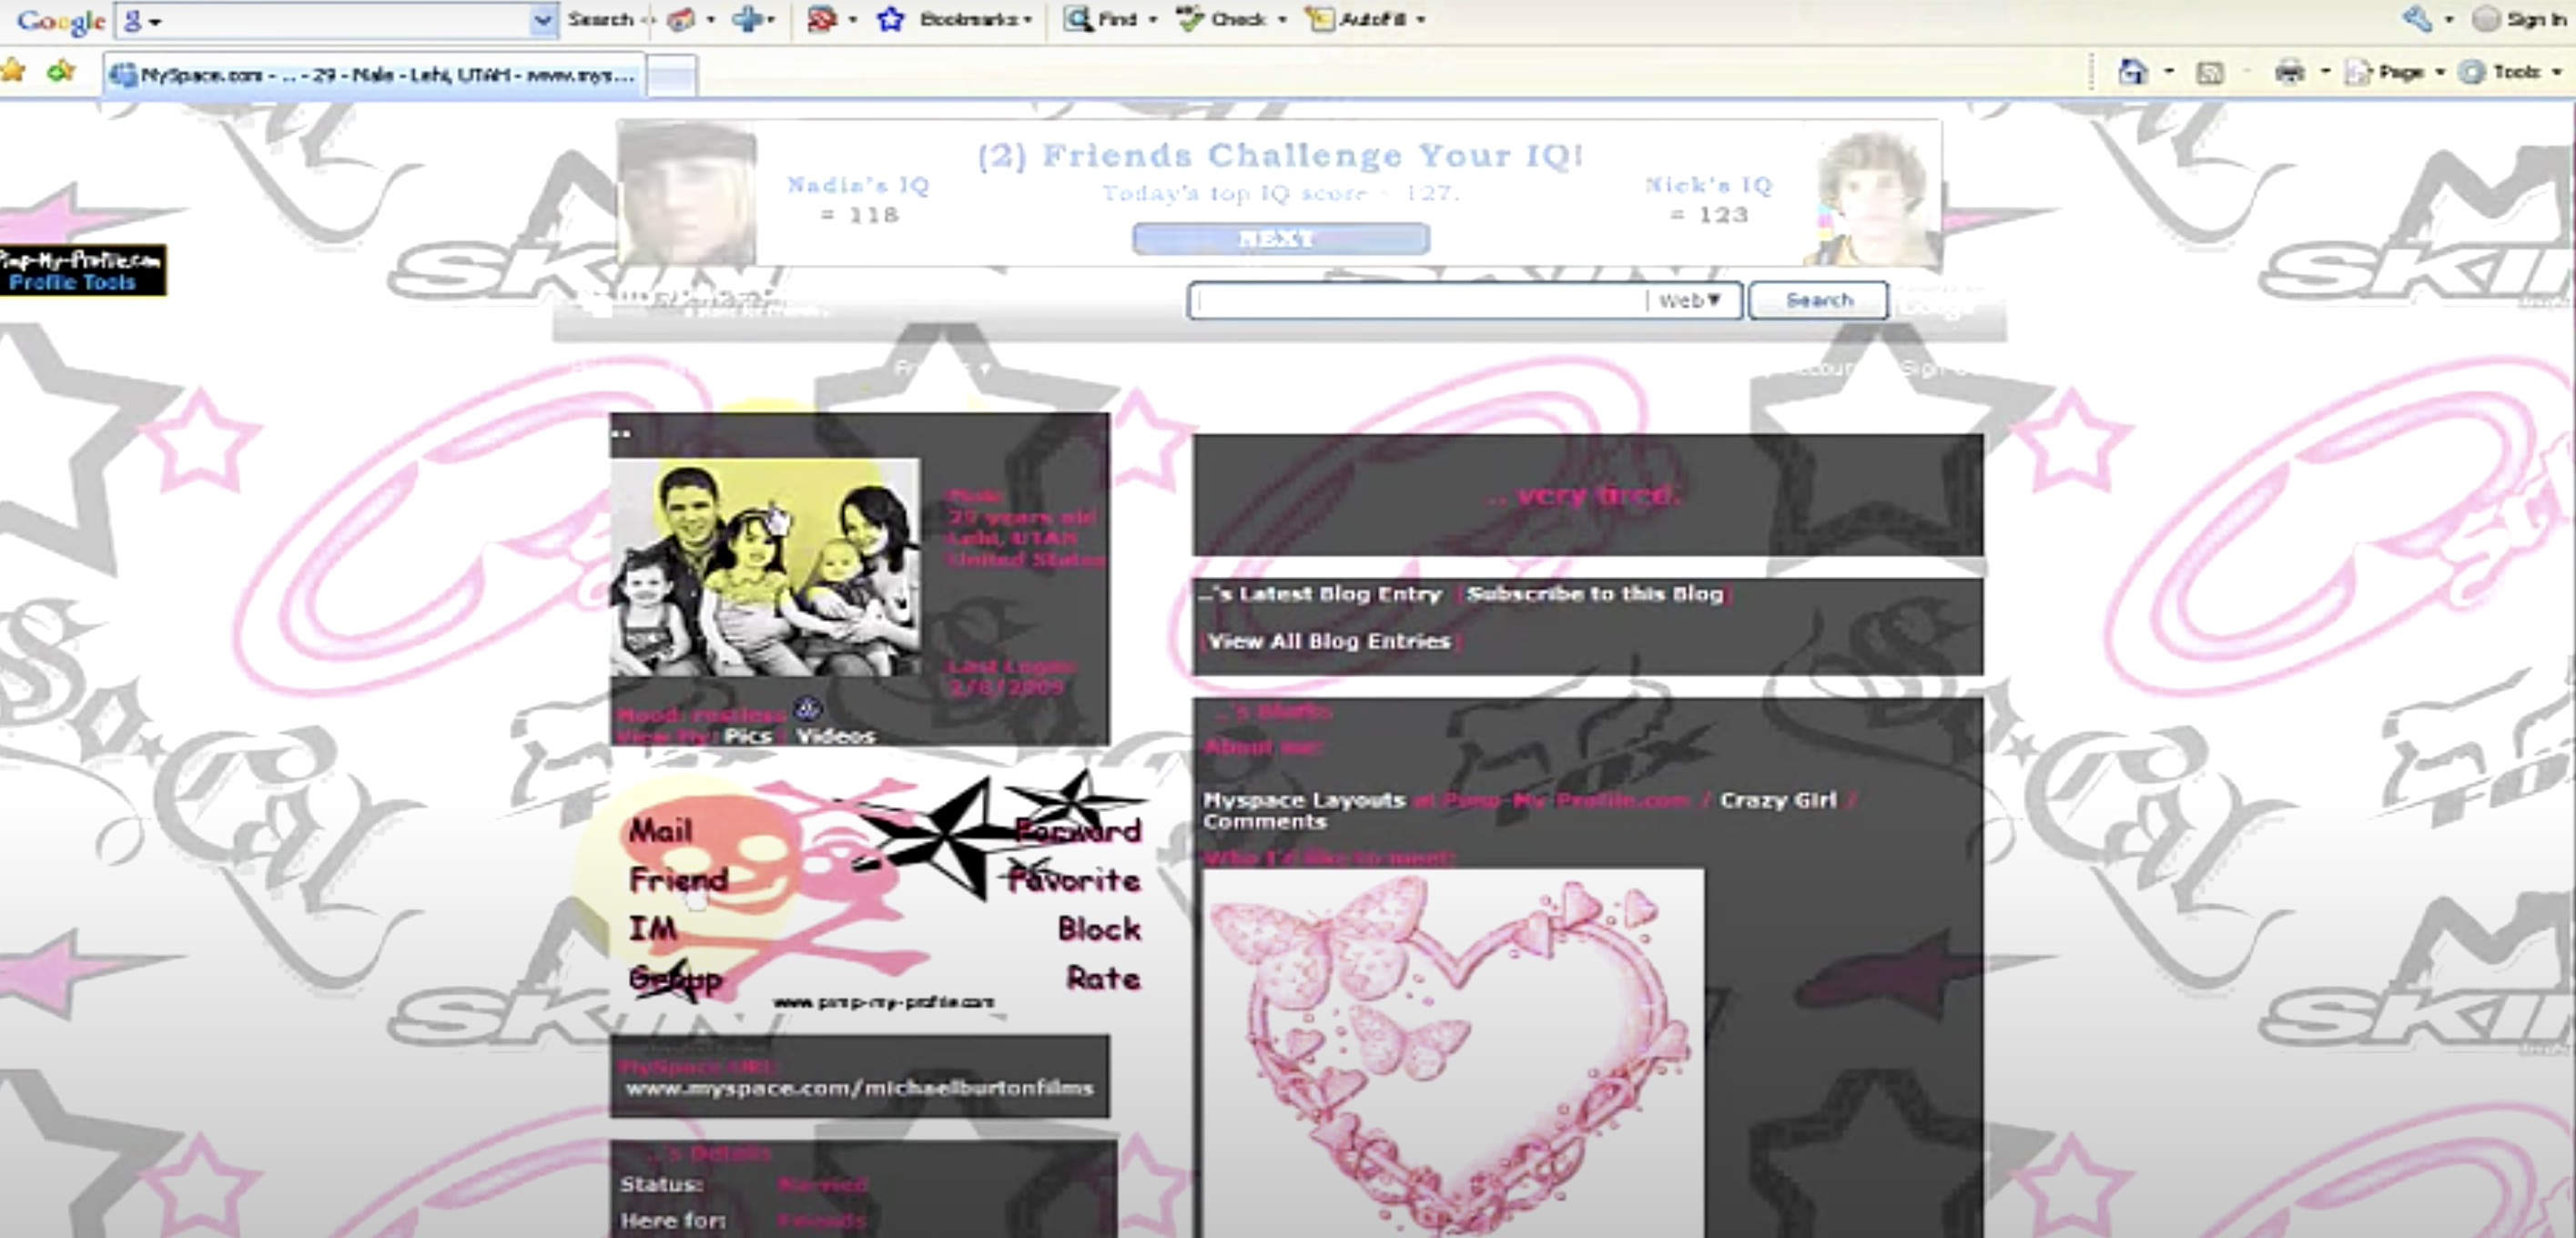 The MySpace profile layout page